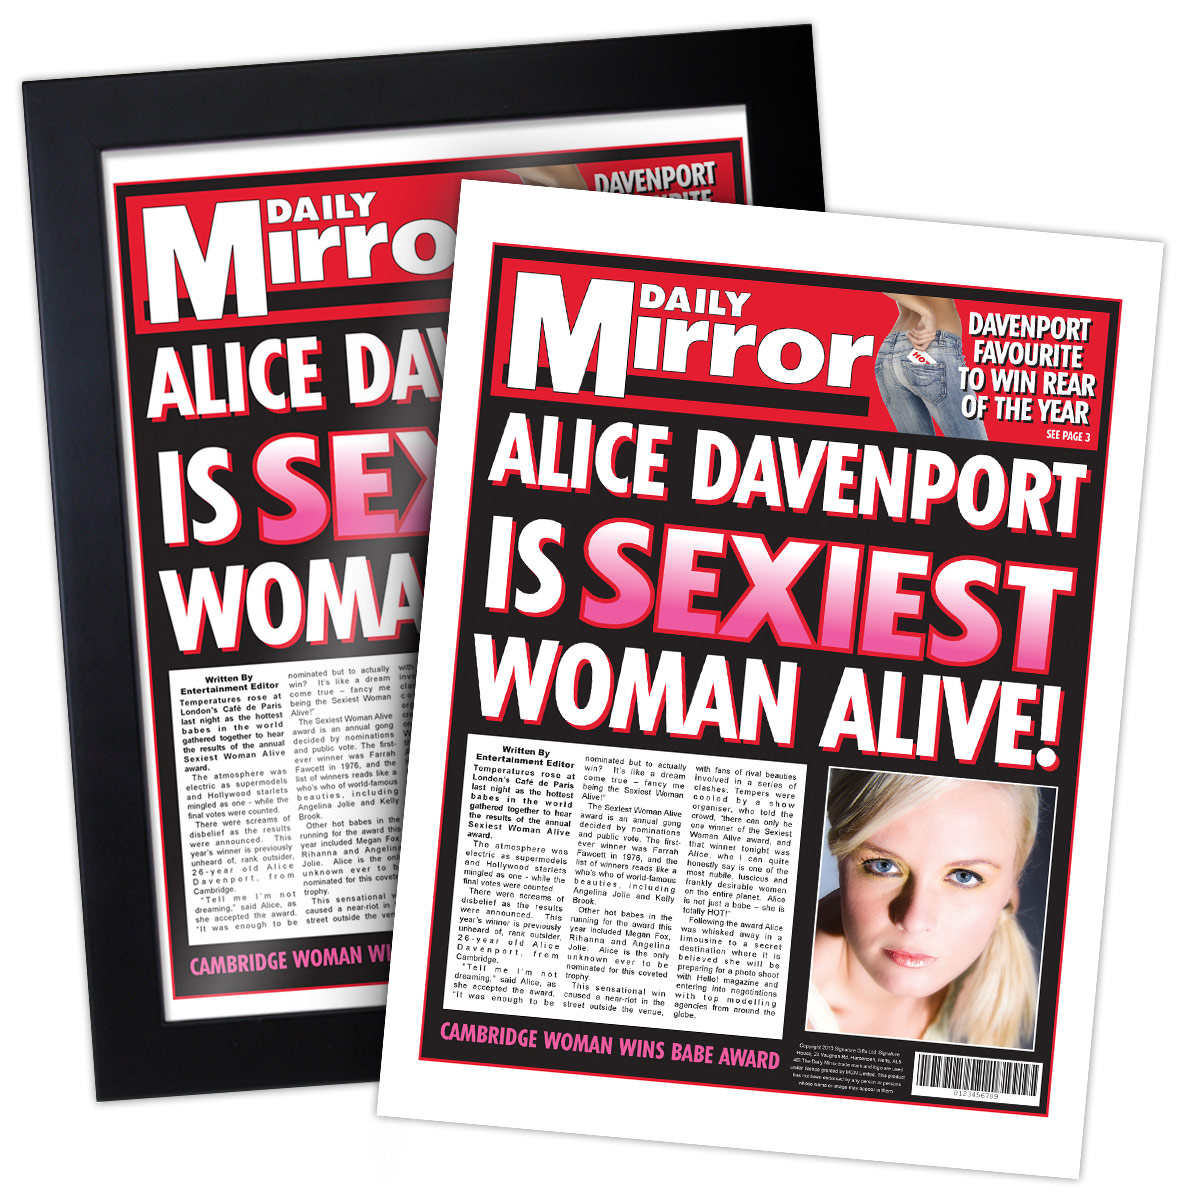 Sexiest Woman Alive Spoof Newspaper - 30th gift